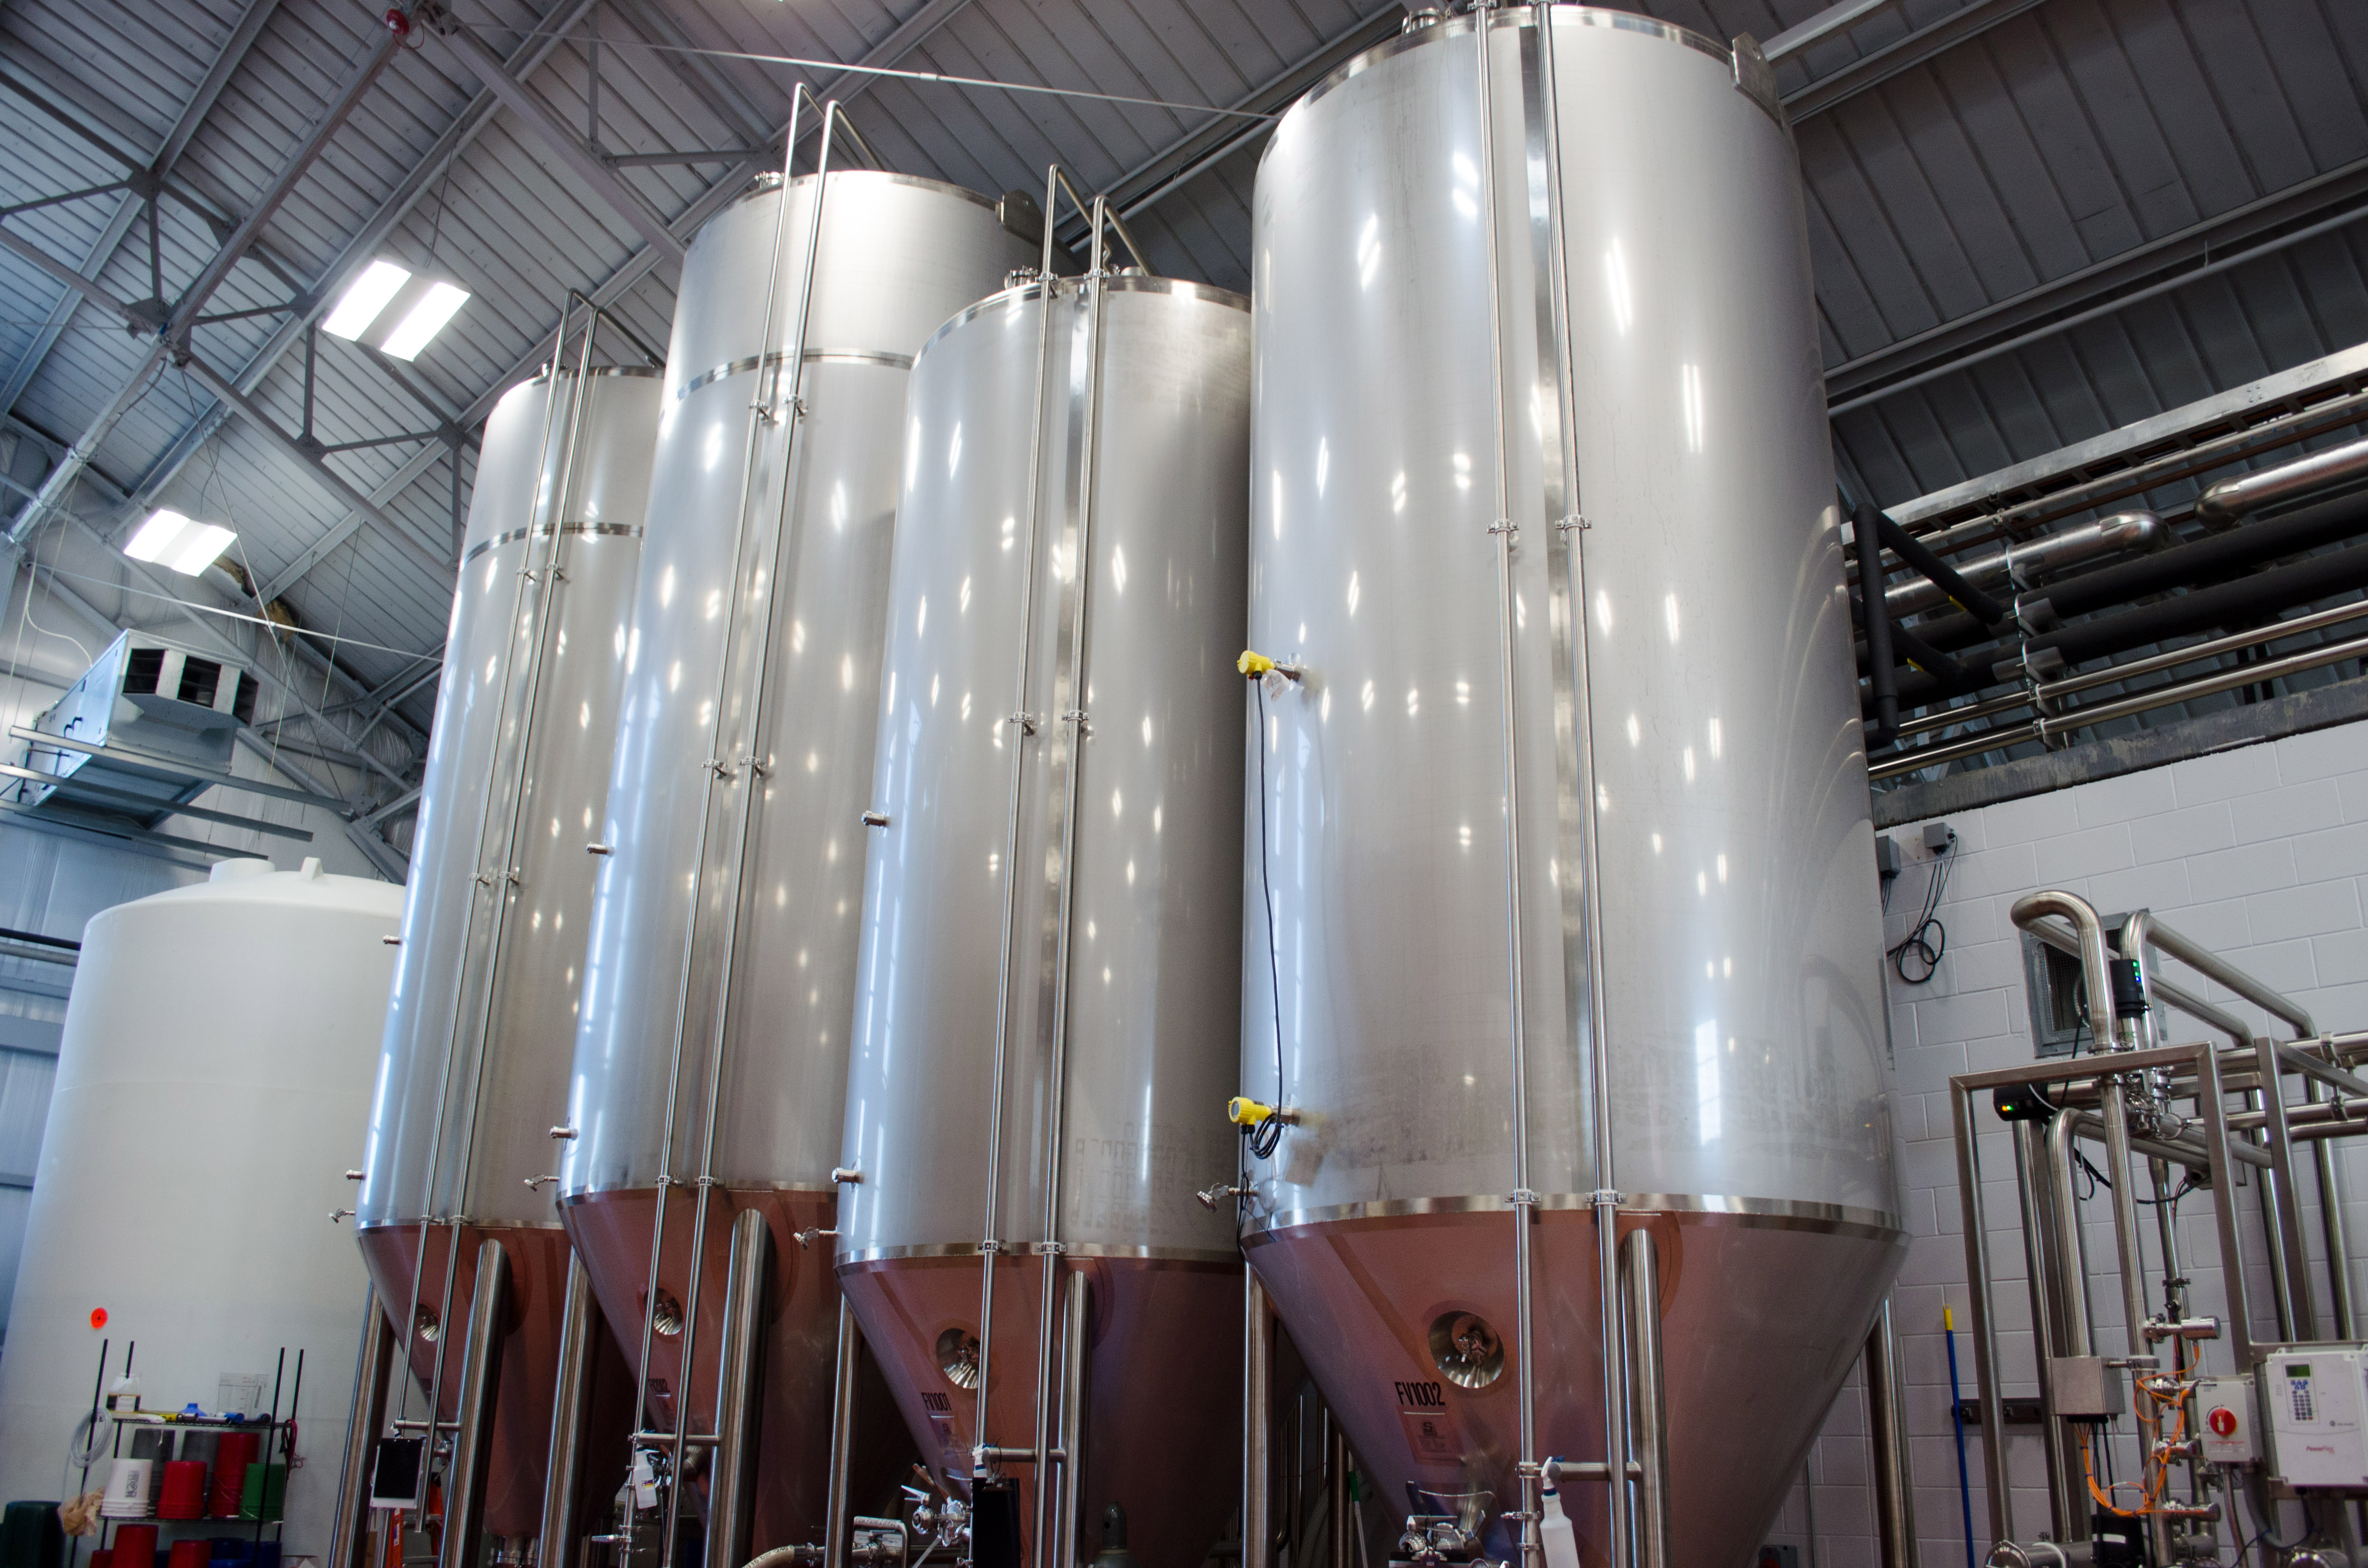 VEGA Pressure Transmitters Measure along the side of fermentation vessels